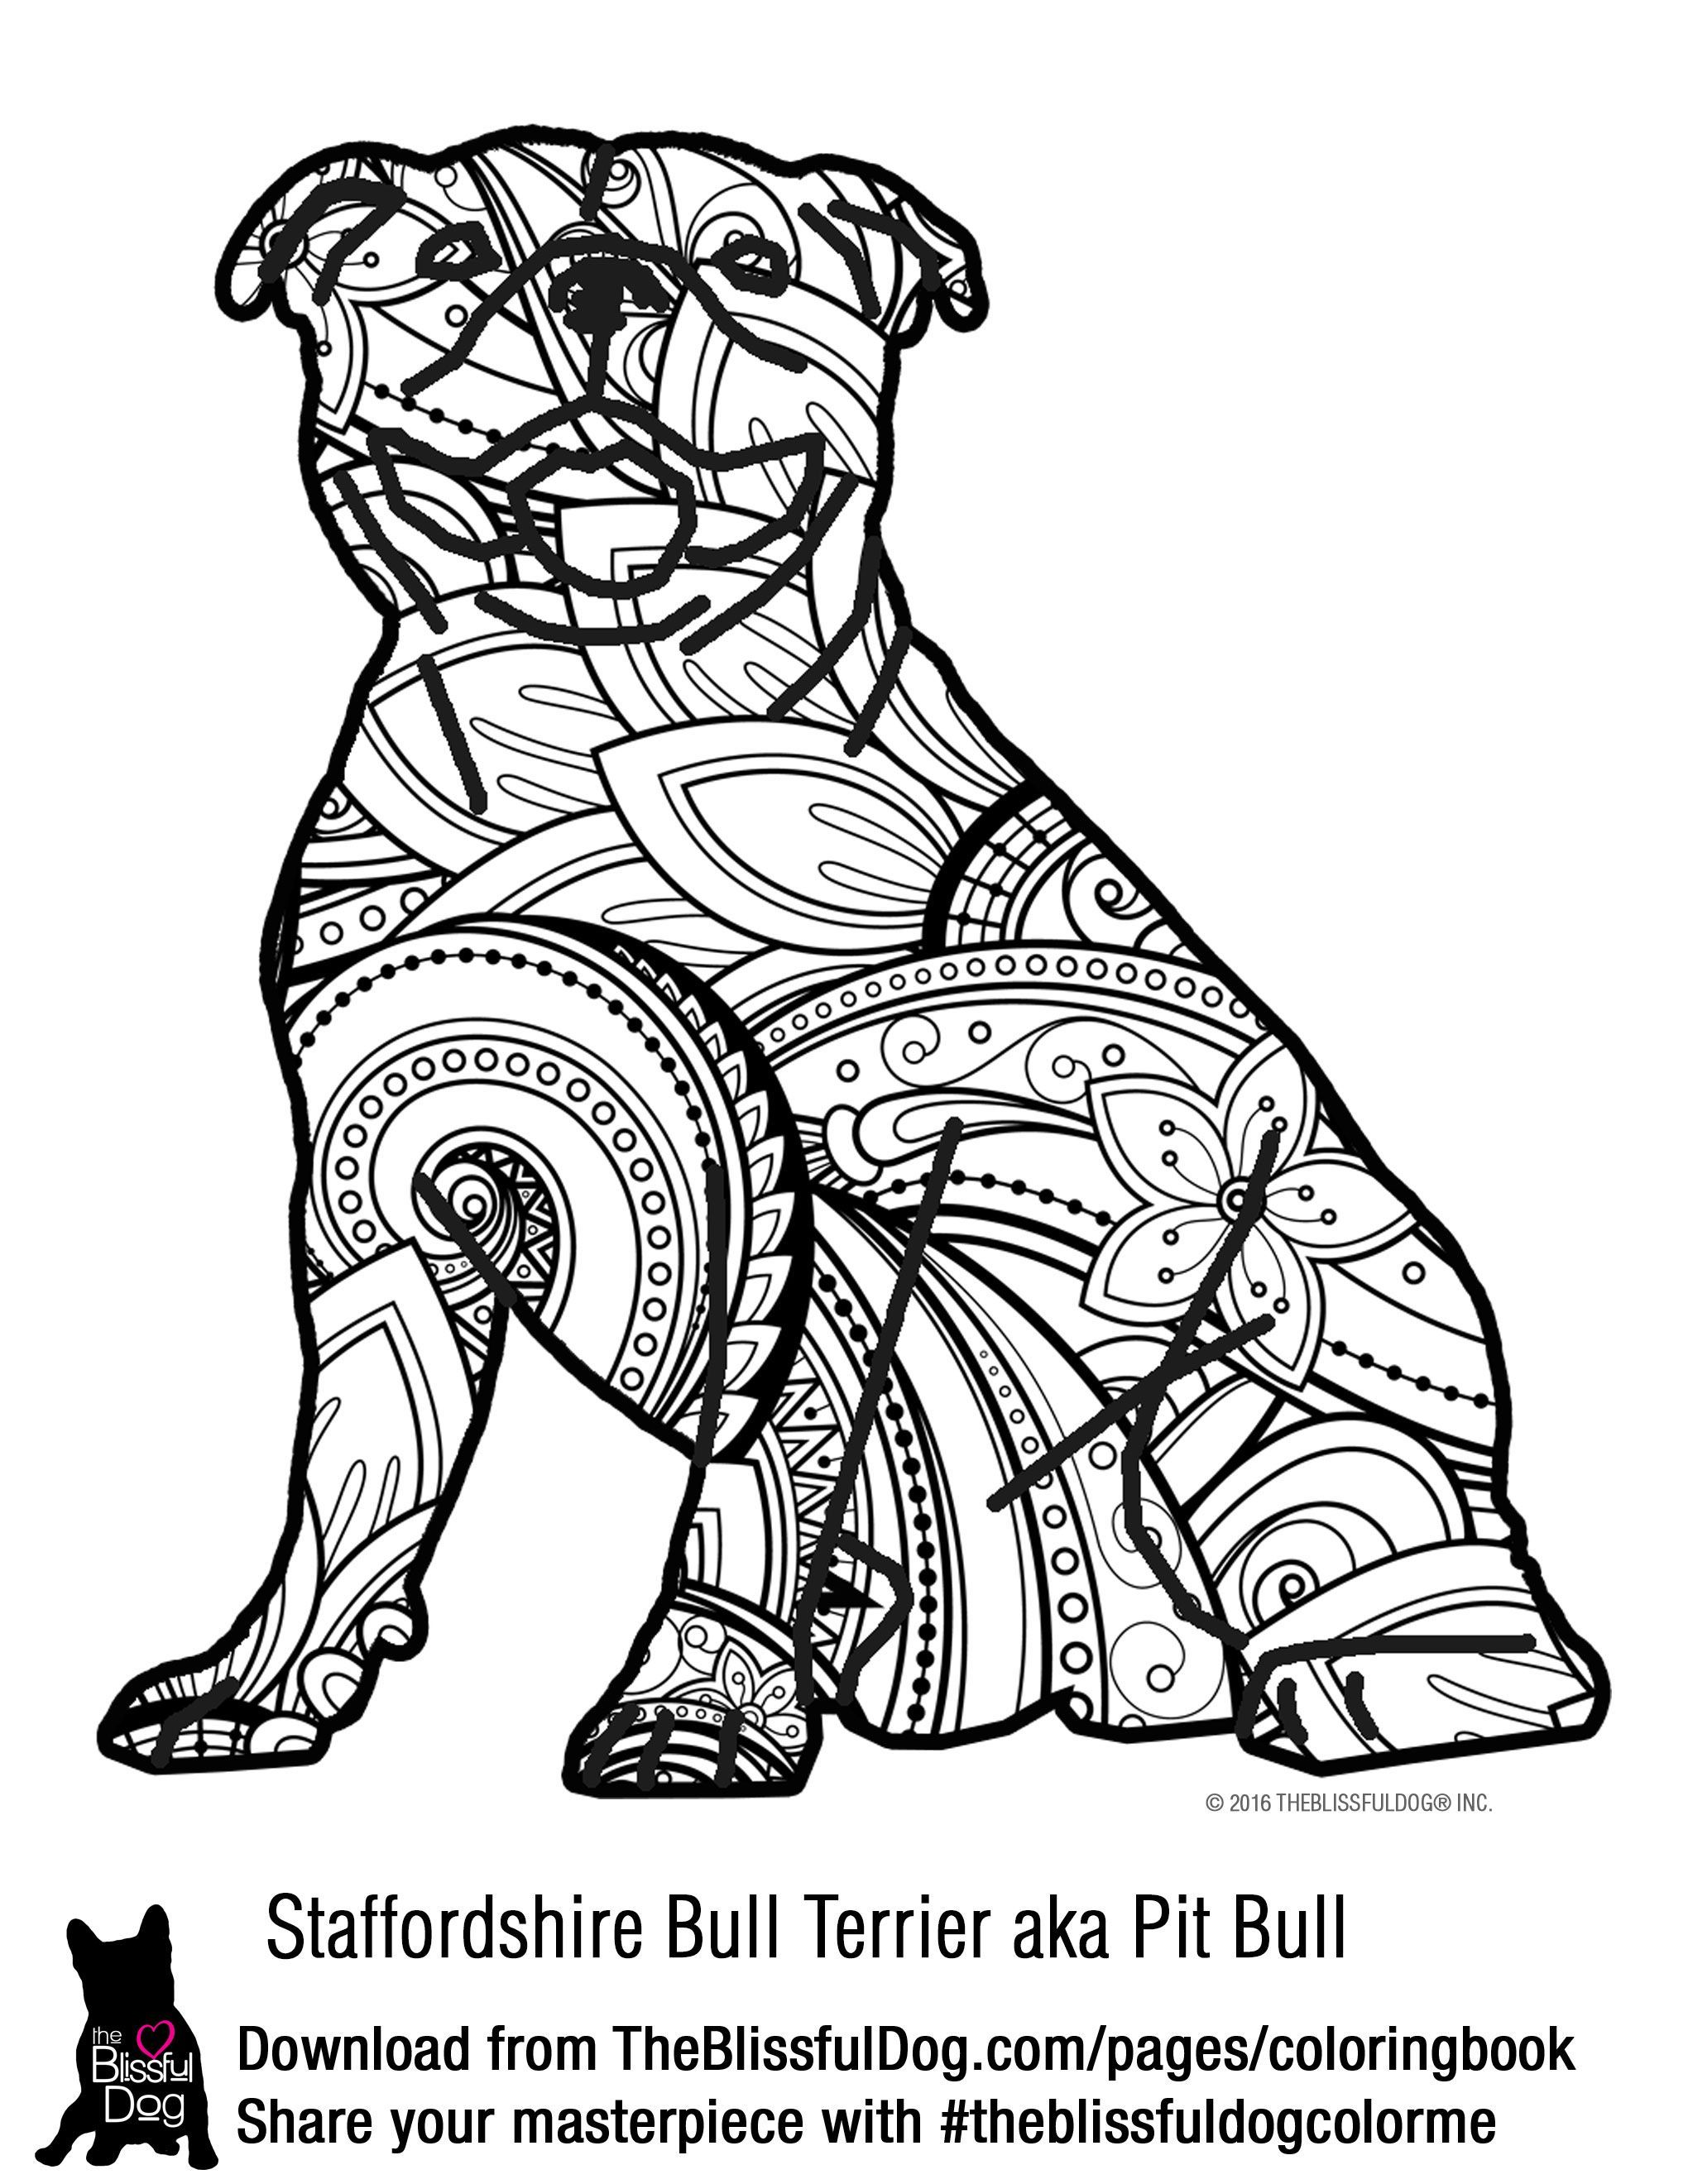 The Blissful Dog Coloring Book Dog Coloring Book Dog Coloring Page Coloring Books